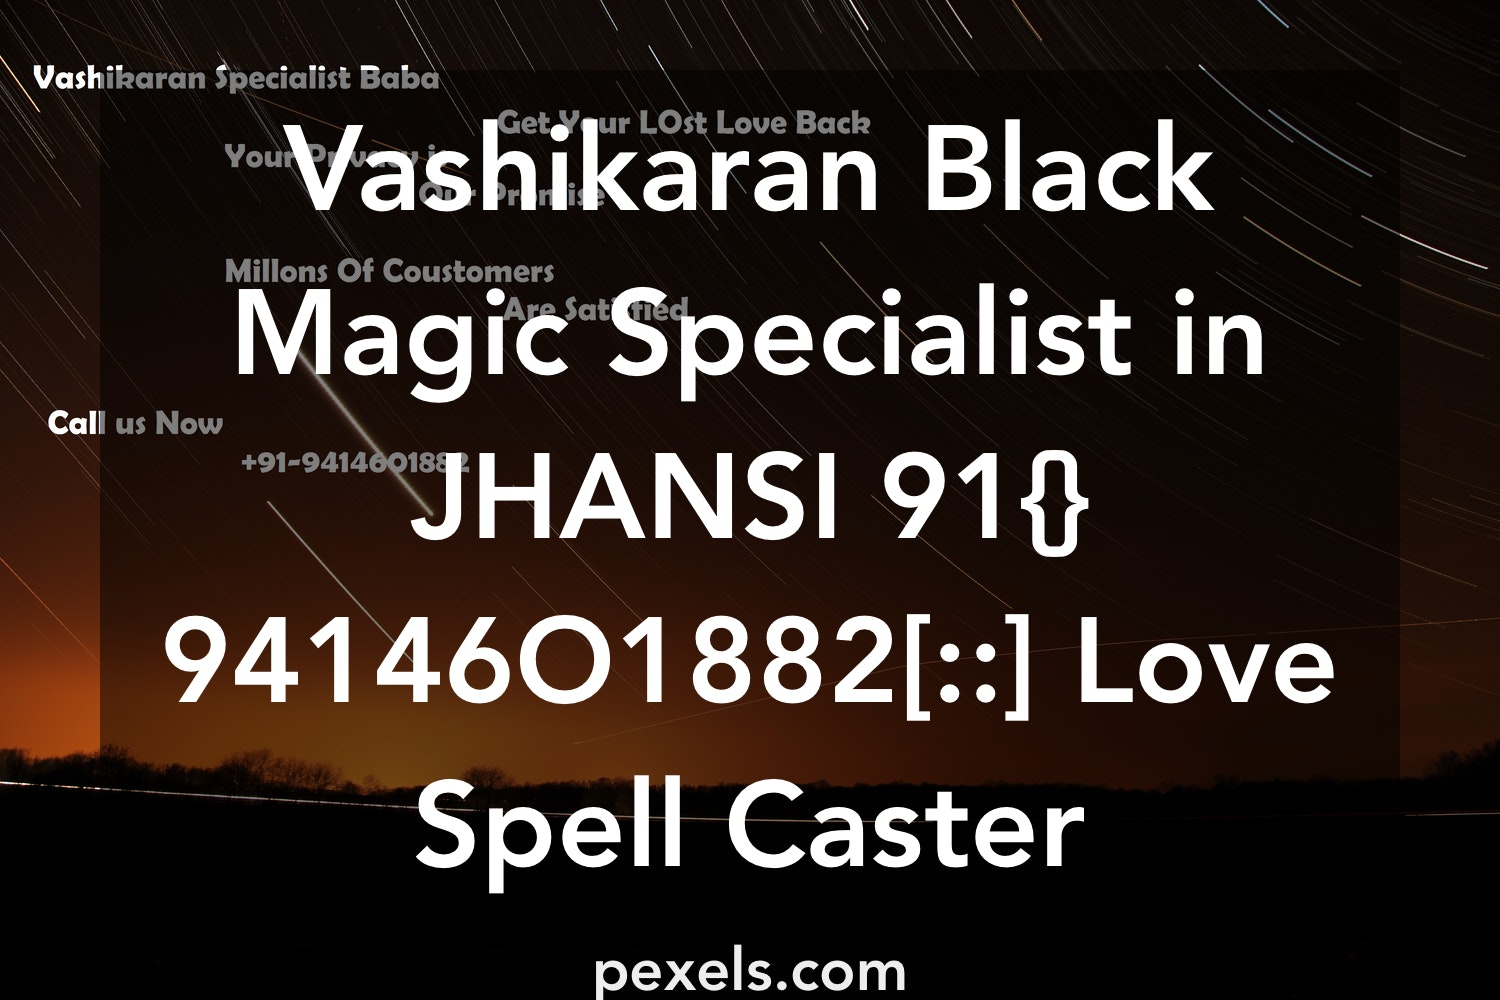 Vashikaran Black Magic Specialist in JHANSI 91{}94146O1882